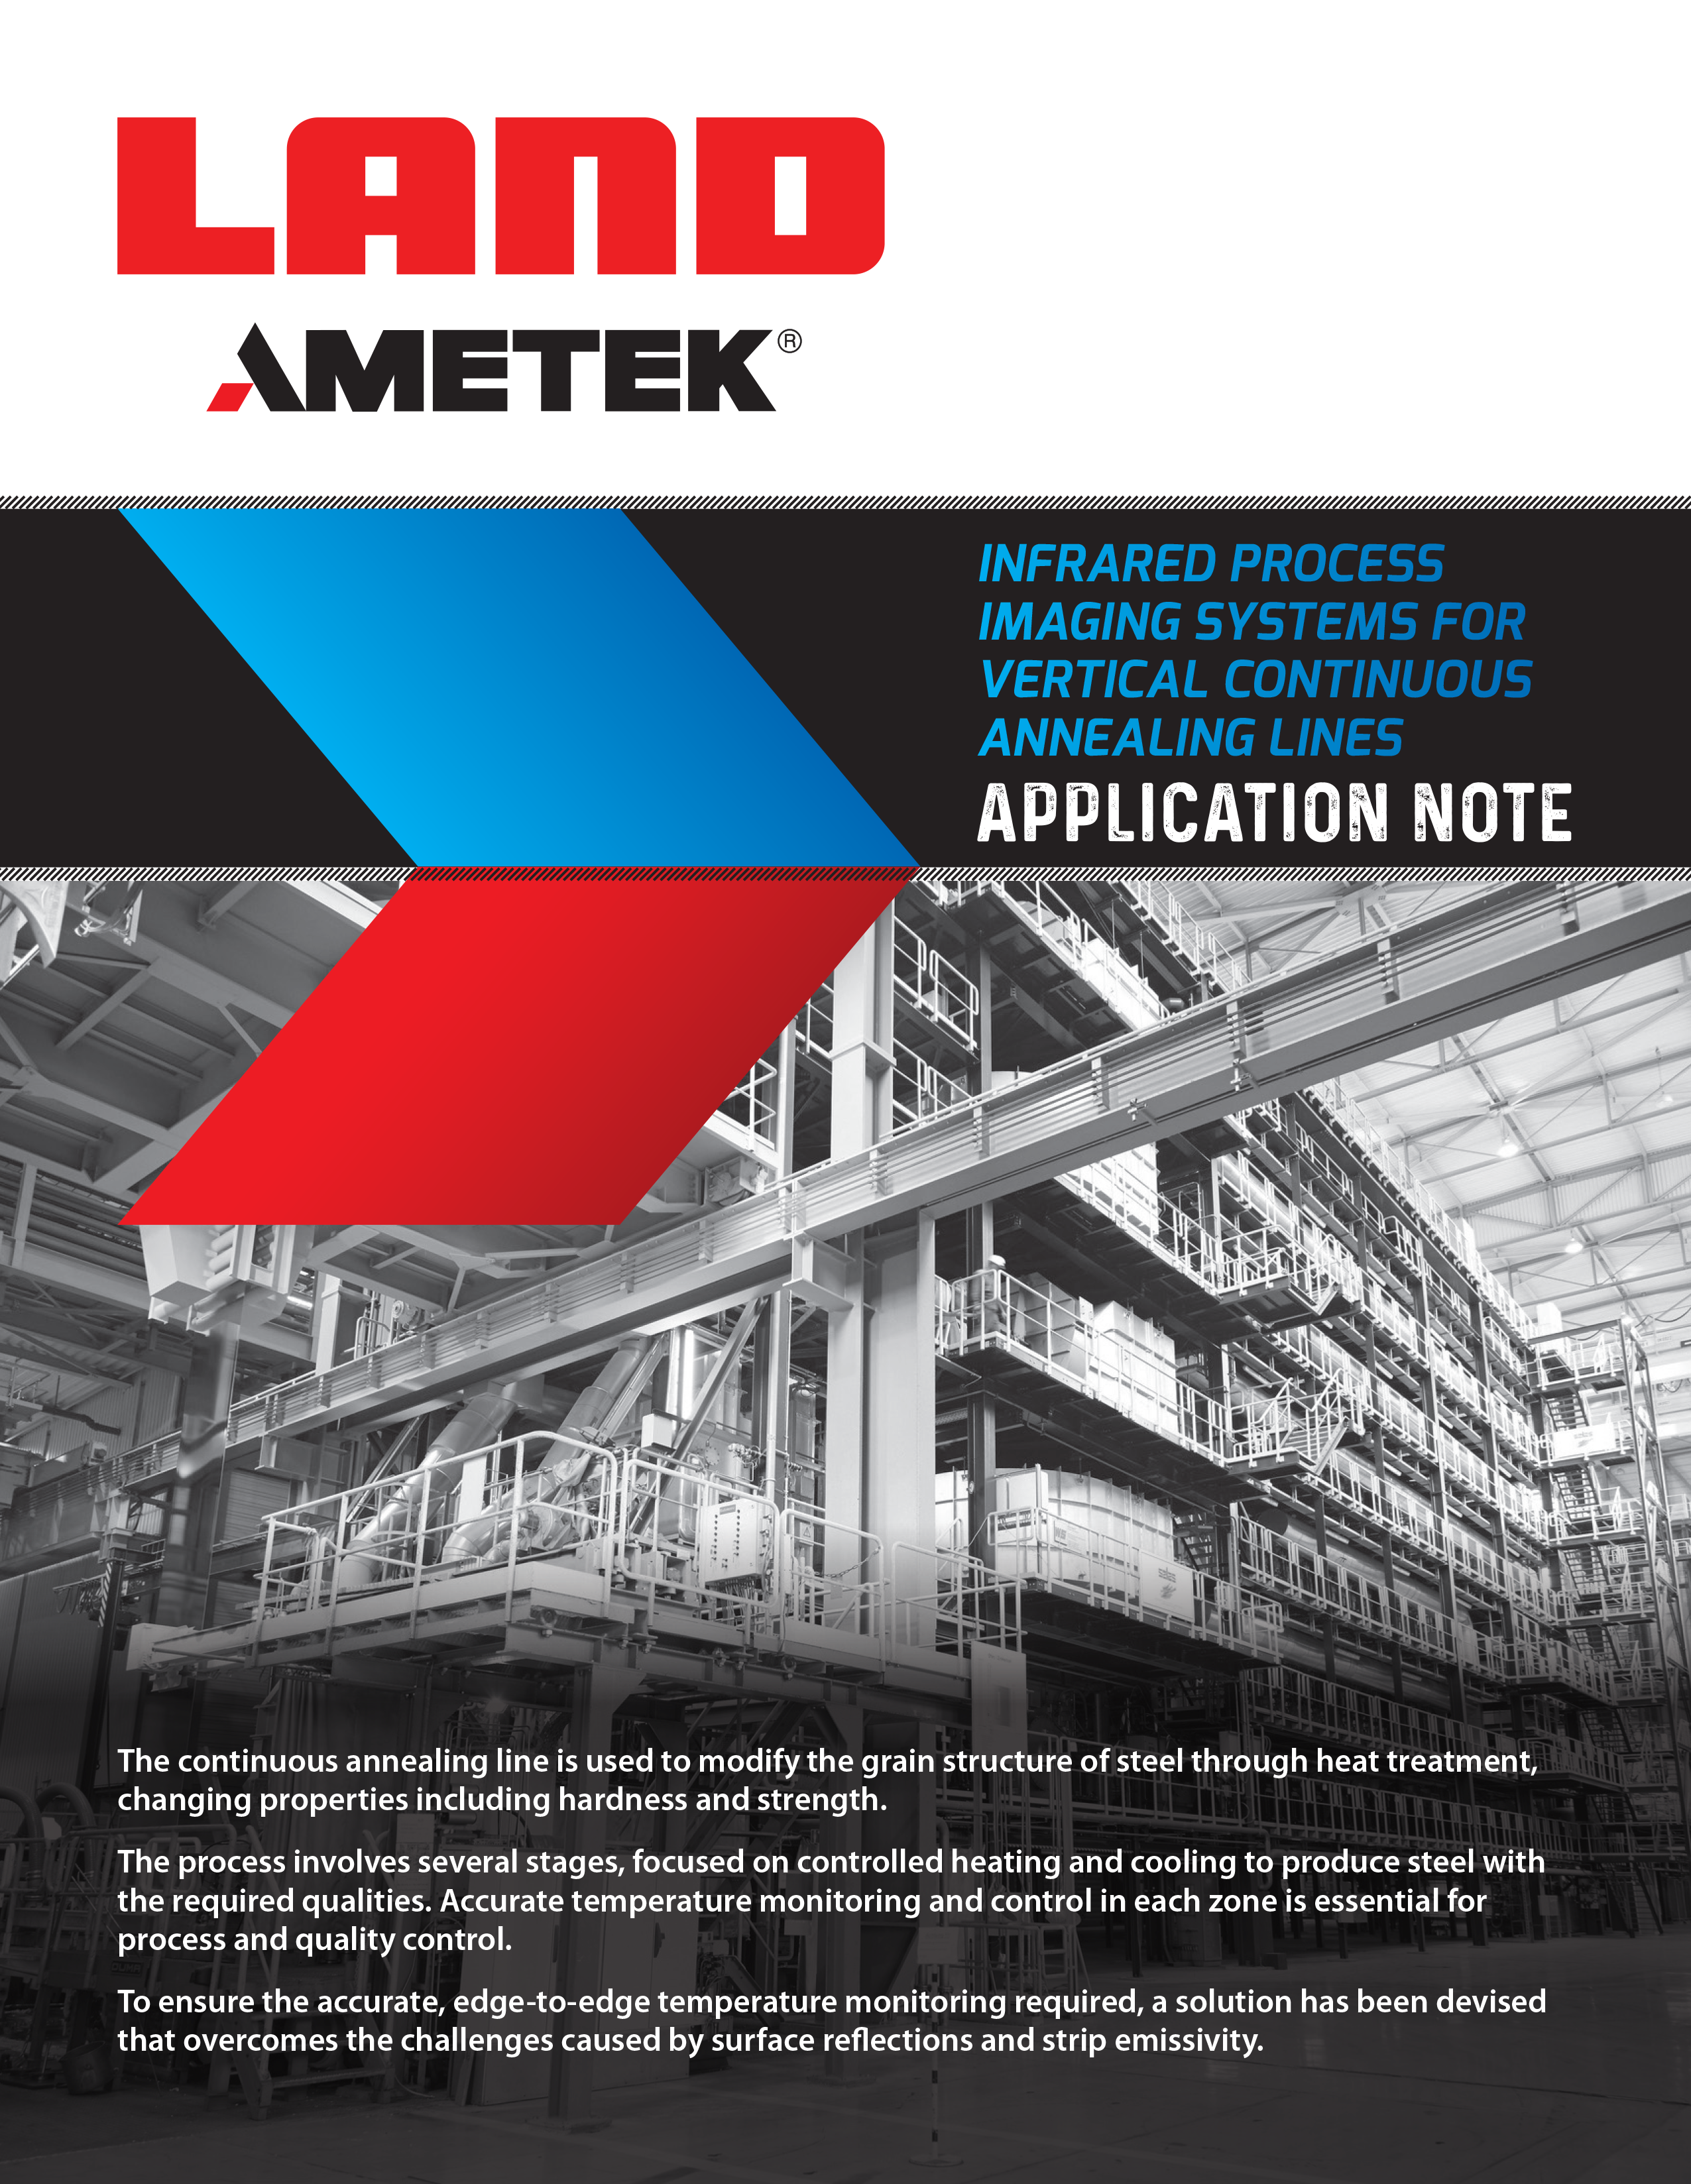 Infrared Process Imaging Systems For Vertical Continuous Annealing Lines - Application Note EN